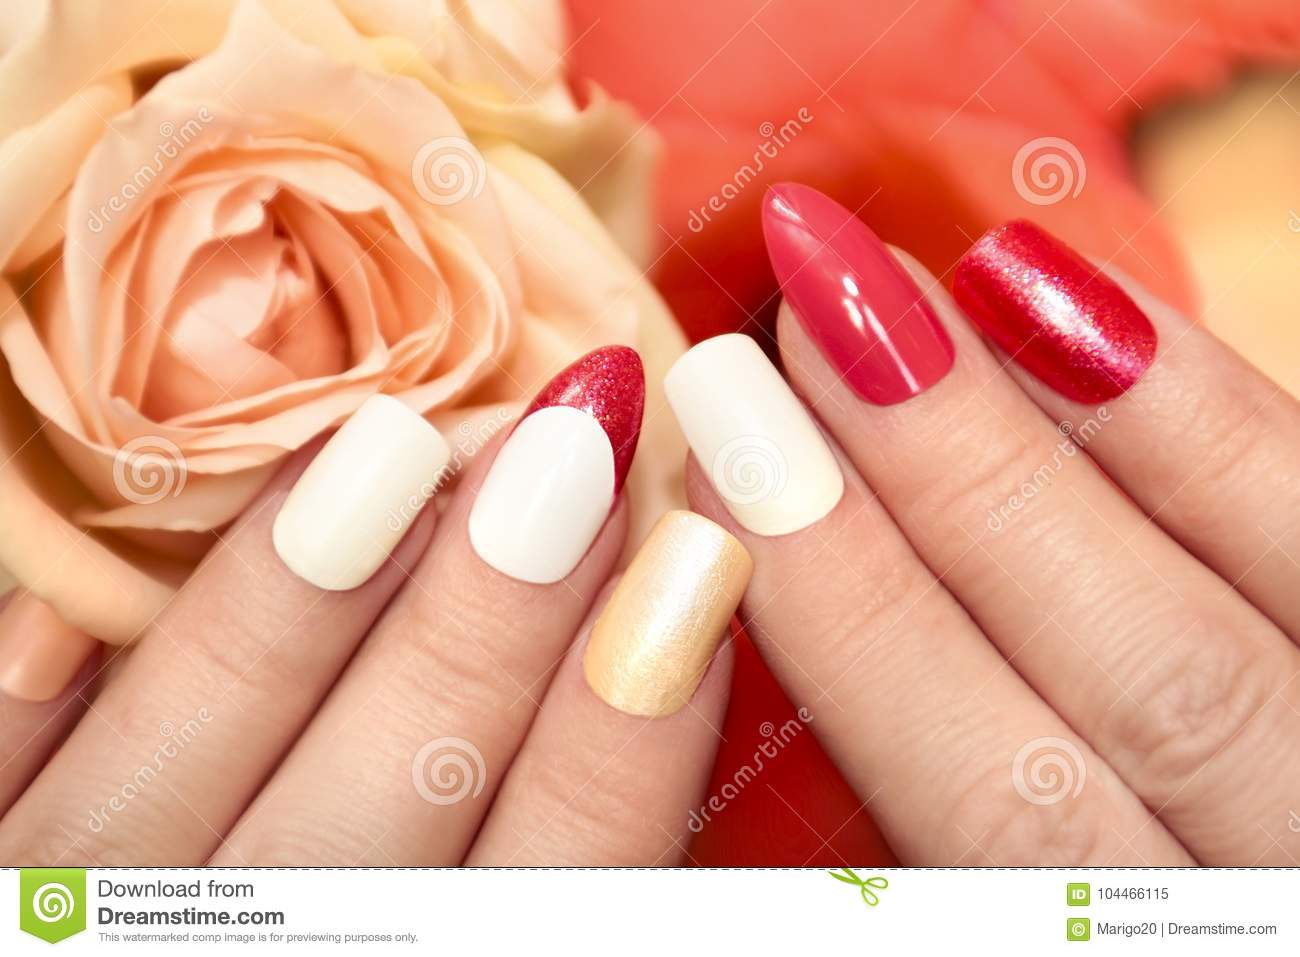 Square Oval Nails Stock Image Image Of Orange Decoration 104466115